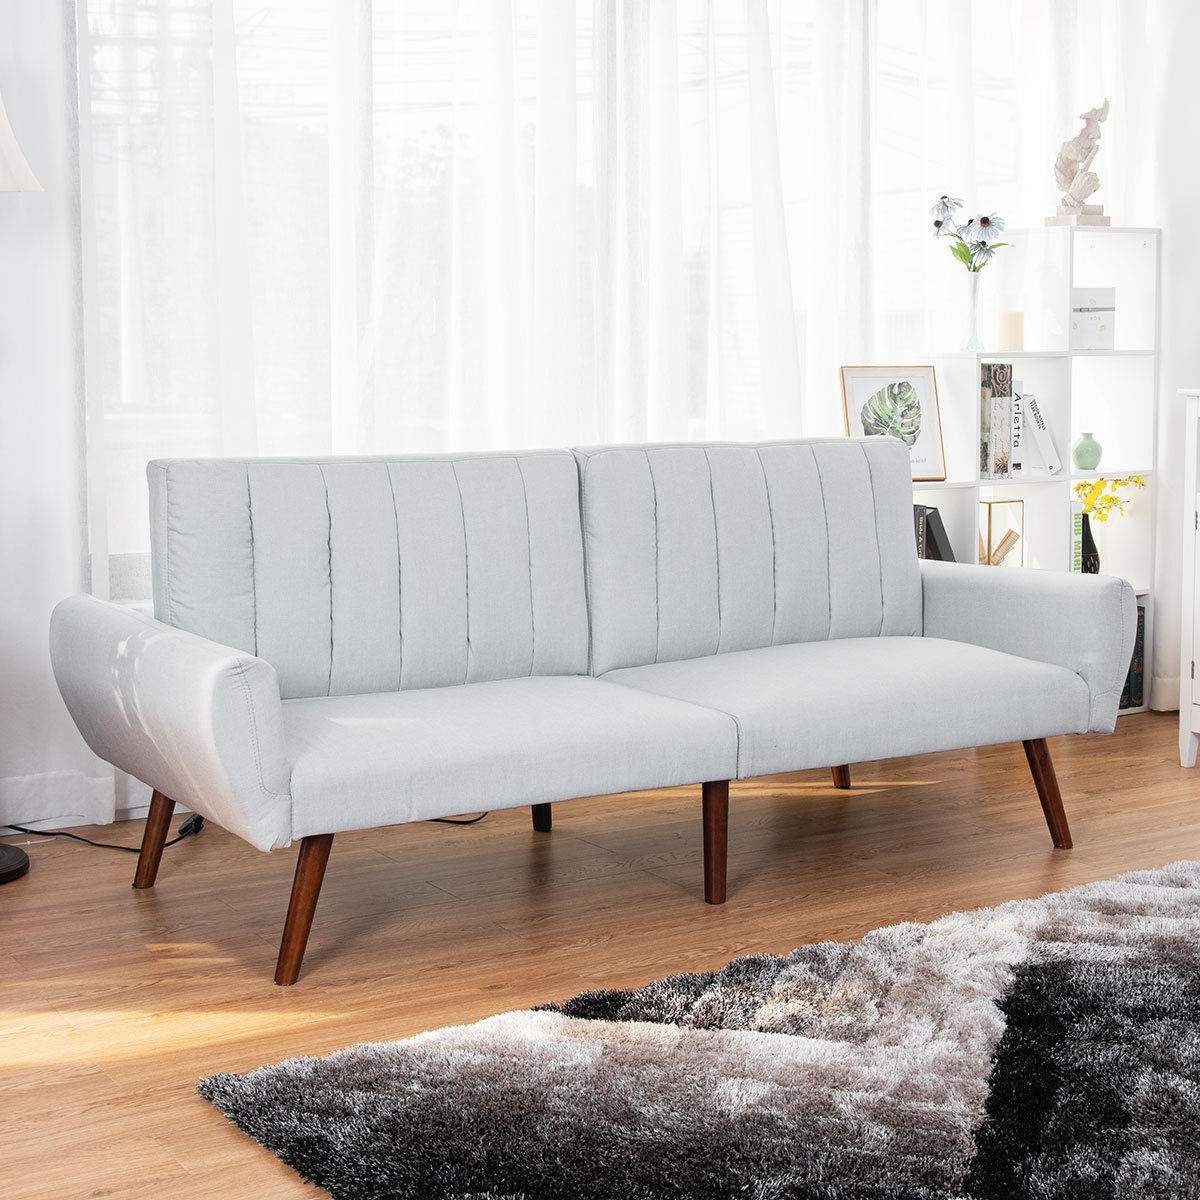 Costway Sofa Futon Bed Sleeper Couch Convertible Mattress Premium Linen Upholstery Gray